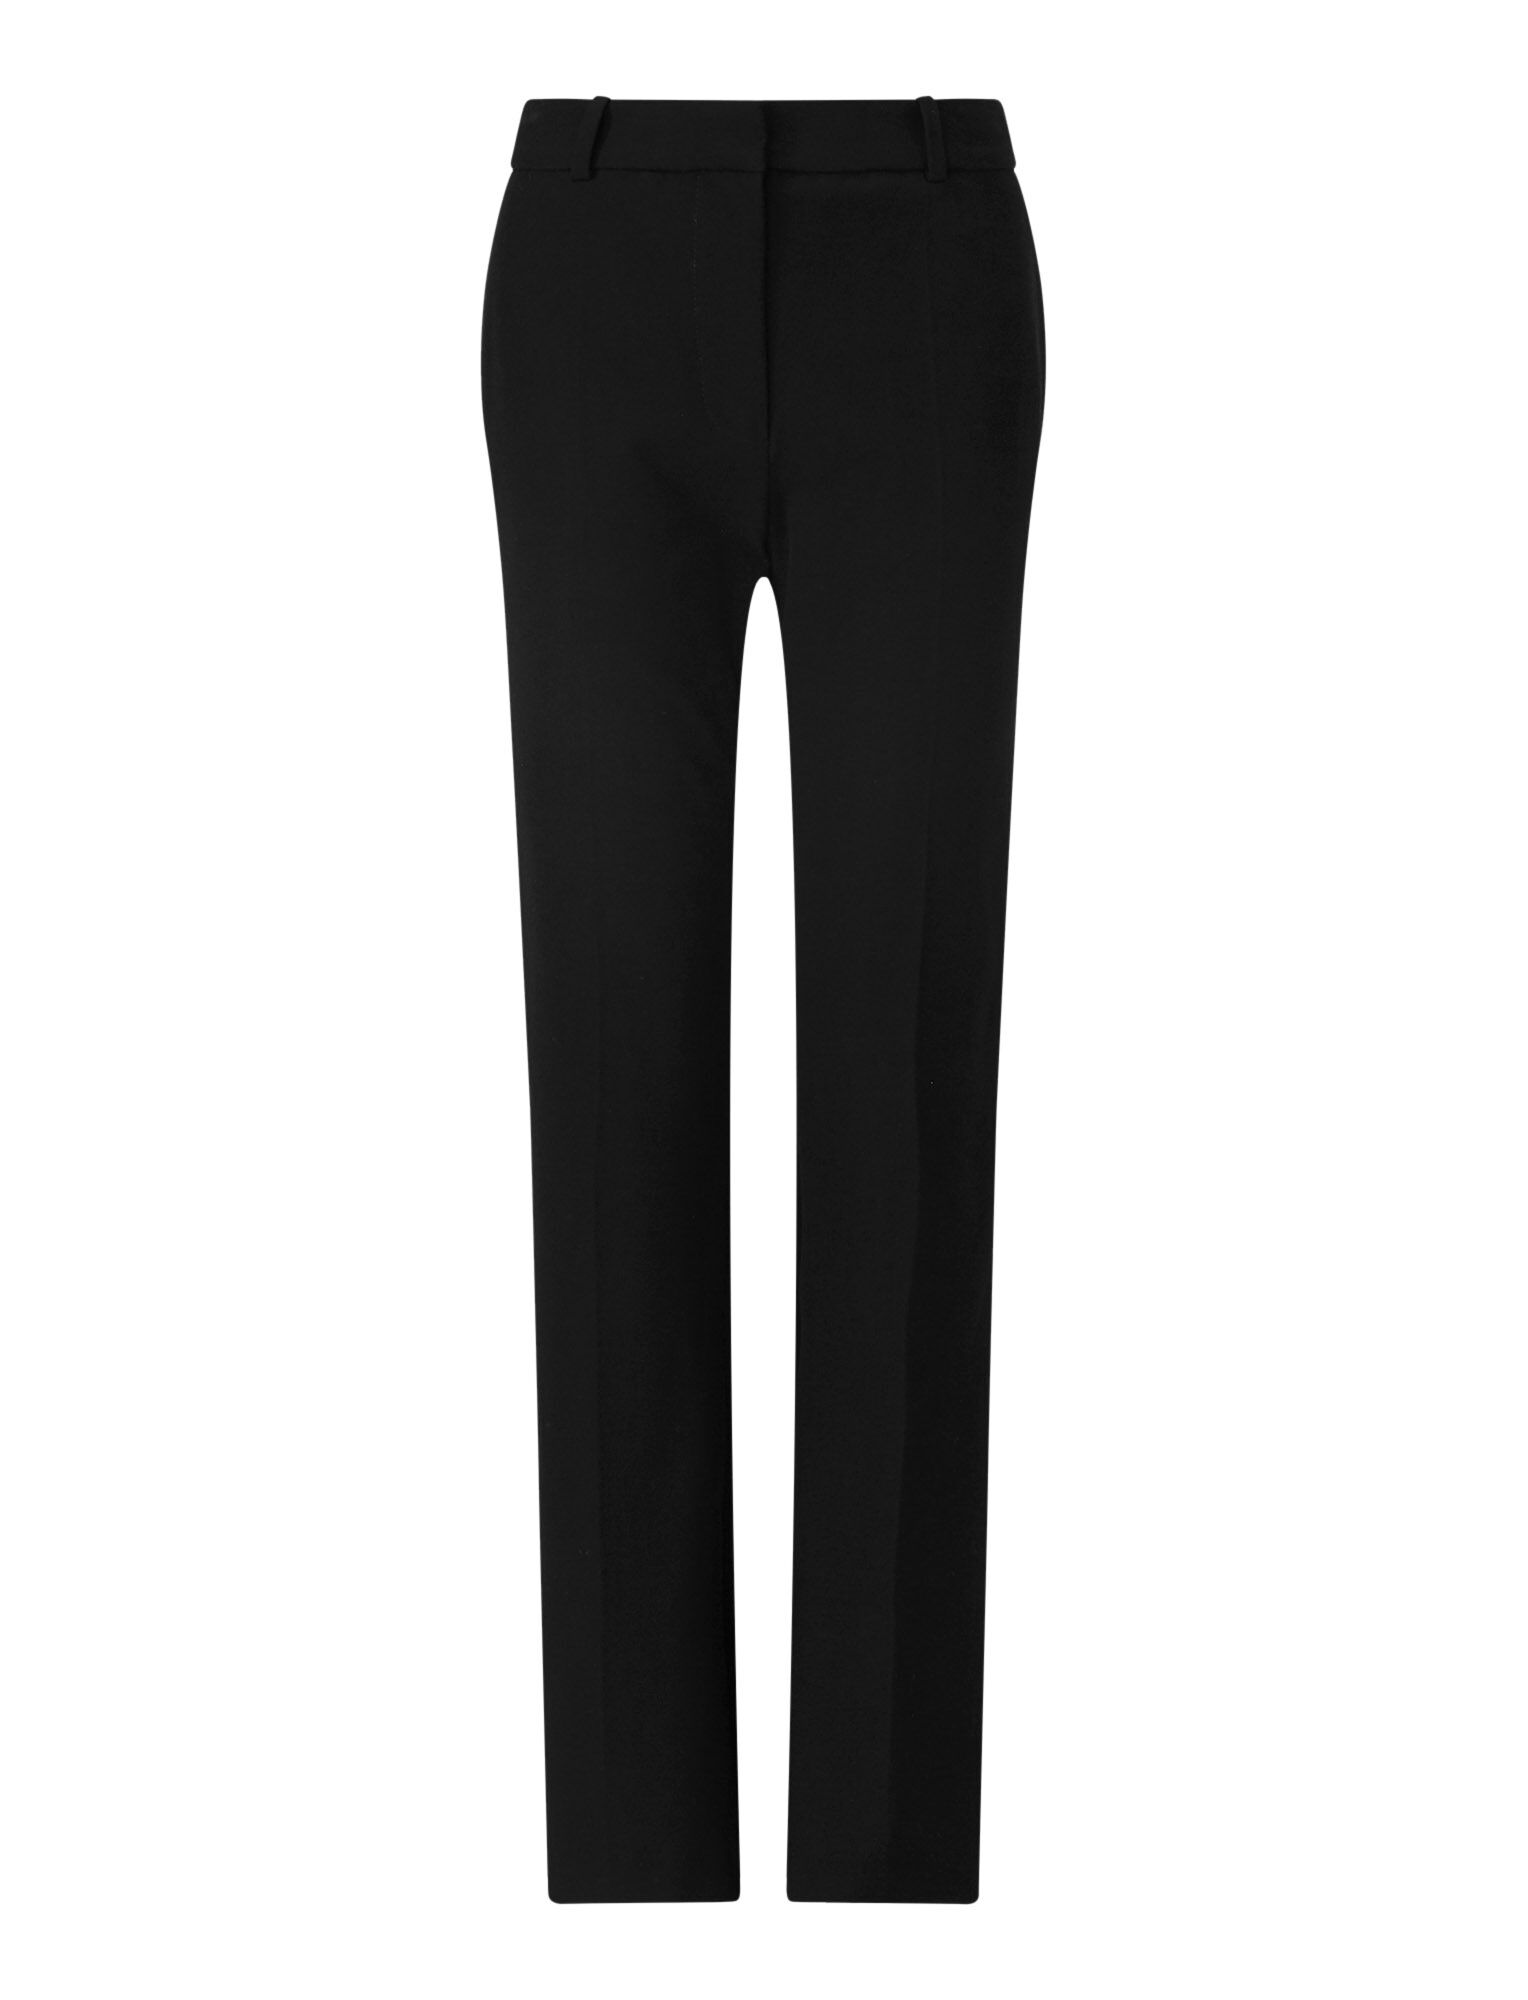 Joseph, Coleman Gabardine Stretch Trousers, in BLACK